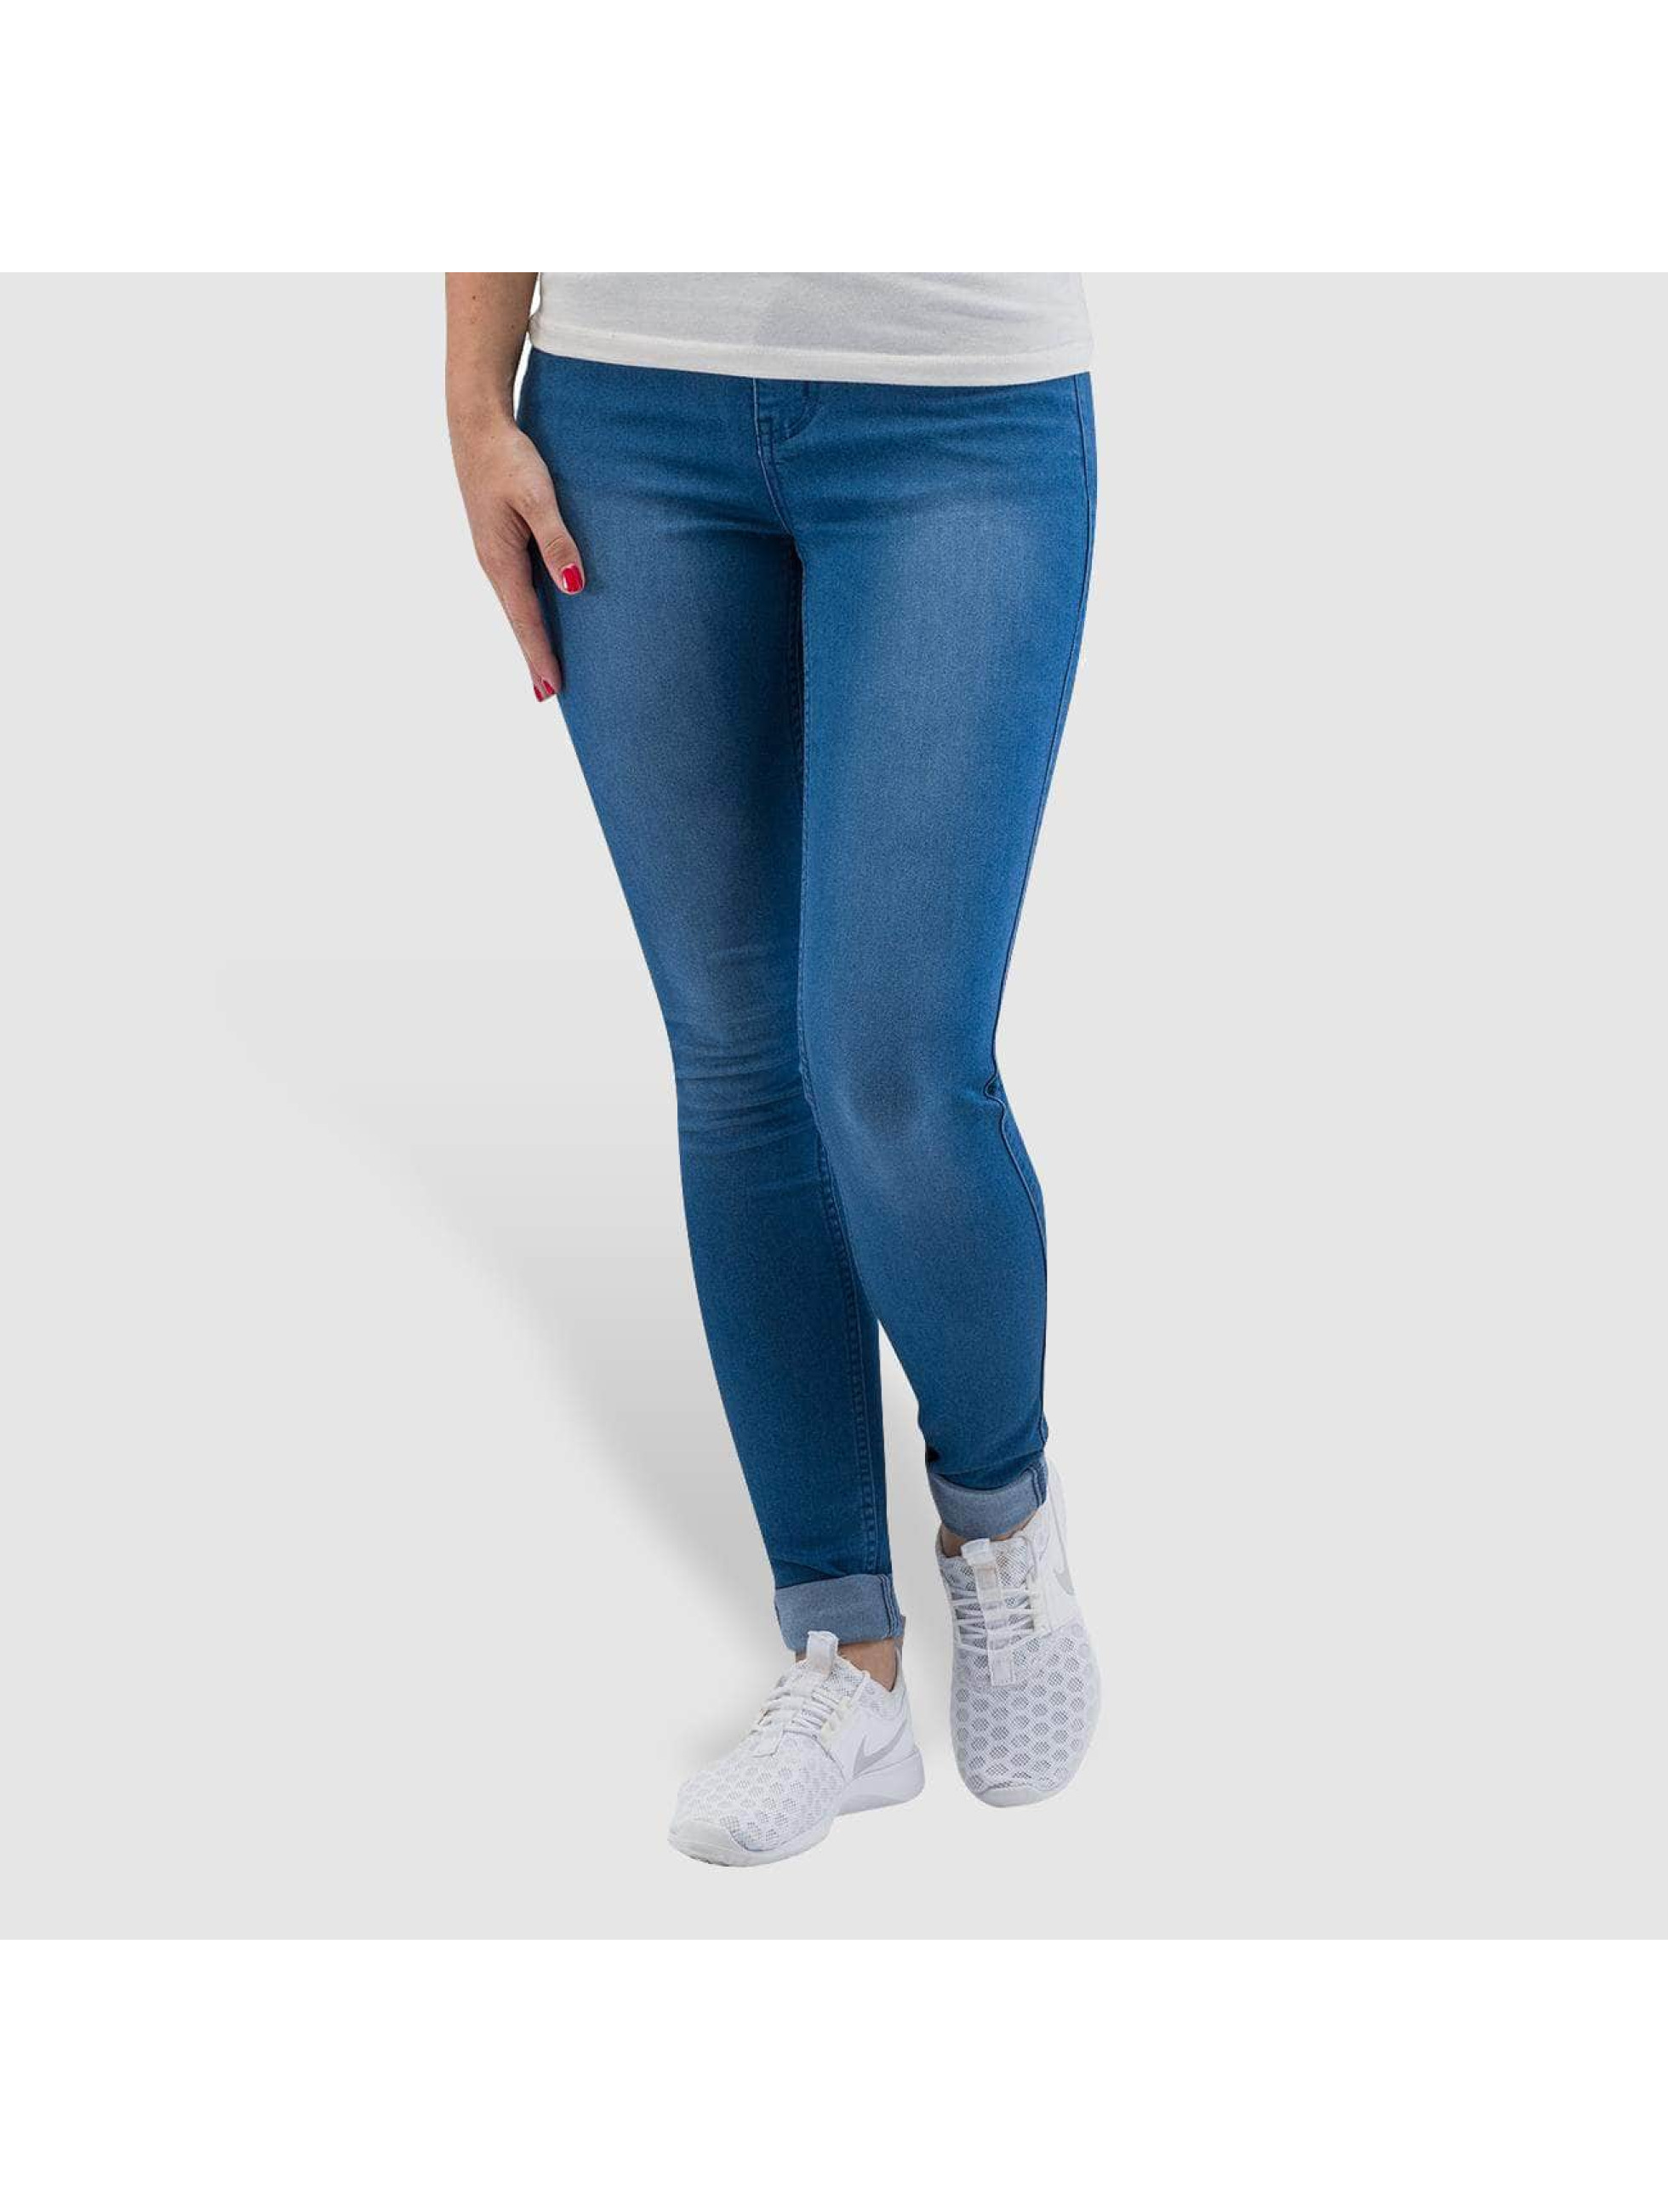 Pieces Skinny Jeans Just Jute blue